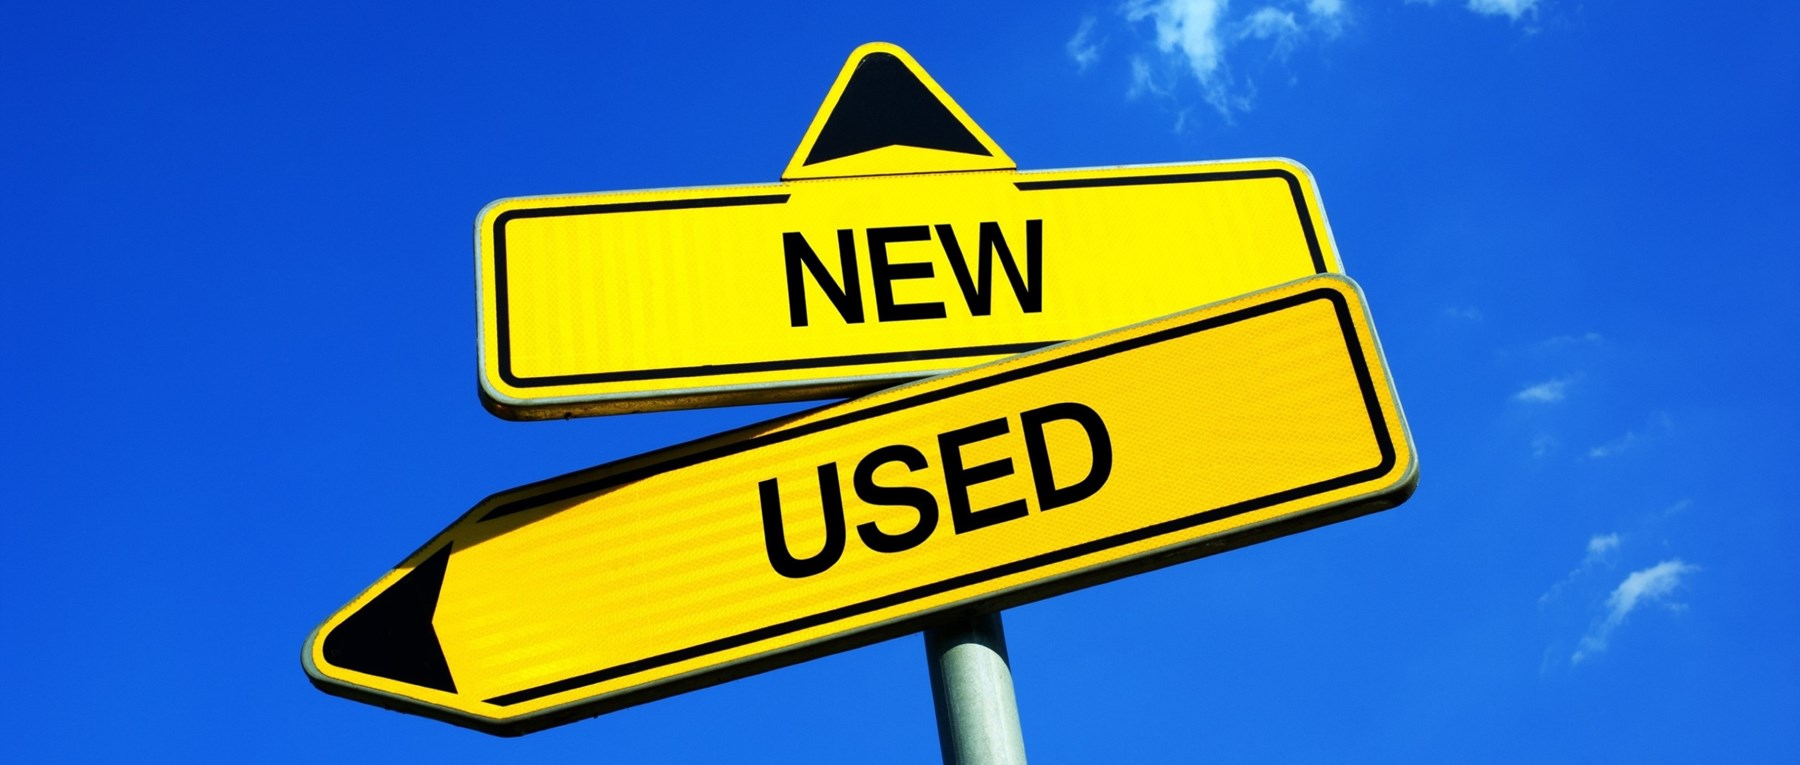 New vs used traffic signs